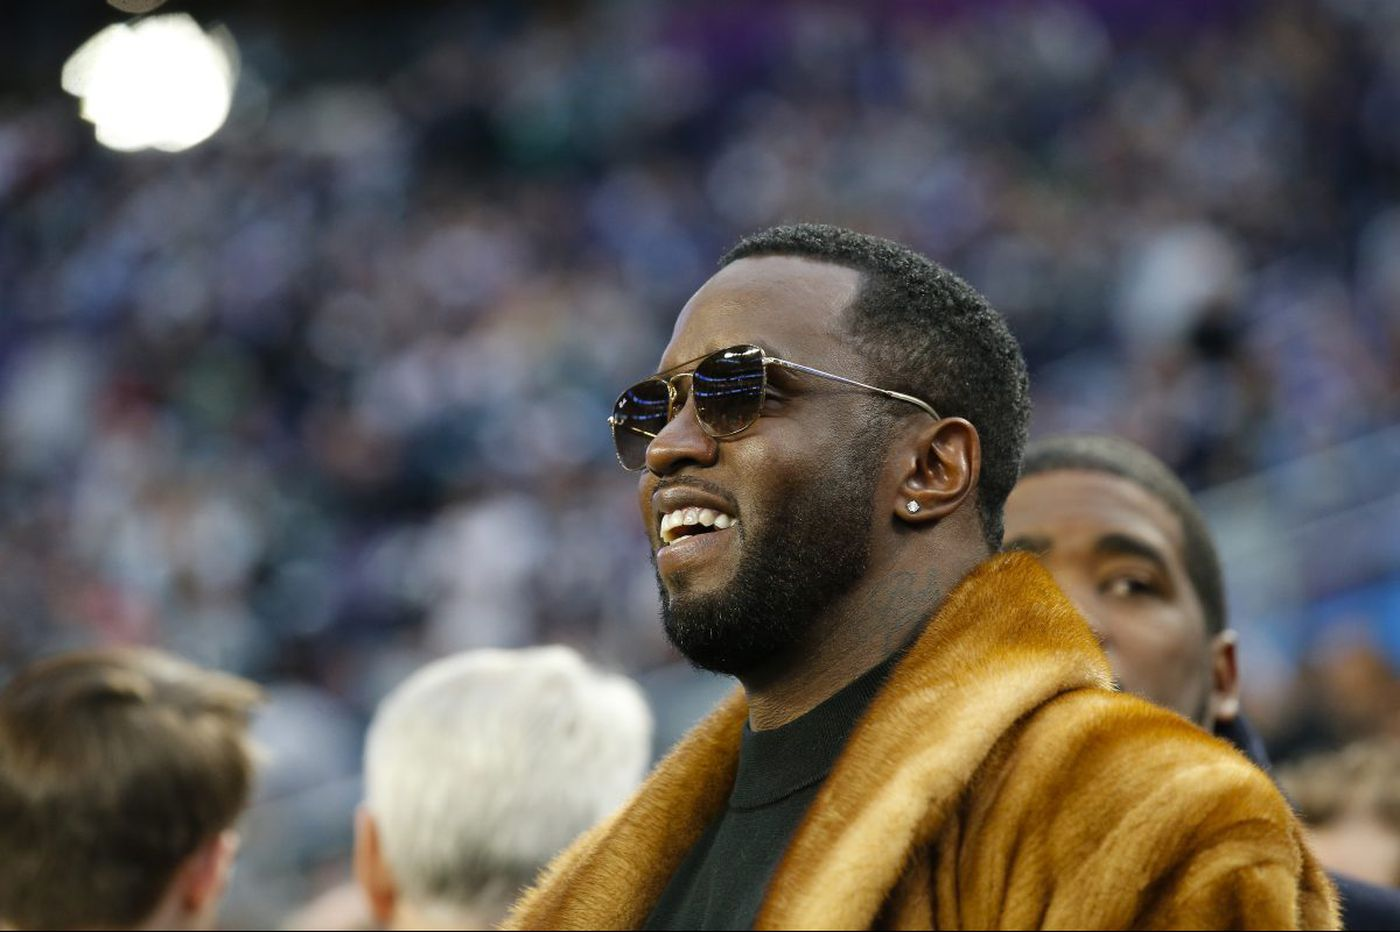 Surprise! P. Diddy's Da Band to reunite with Philly concert, 15 years after debut album